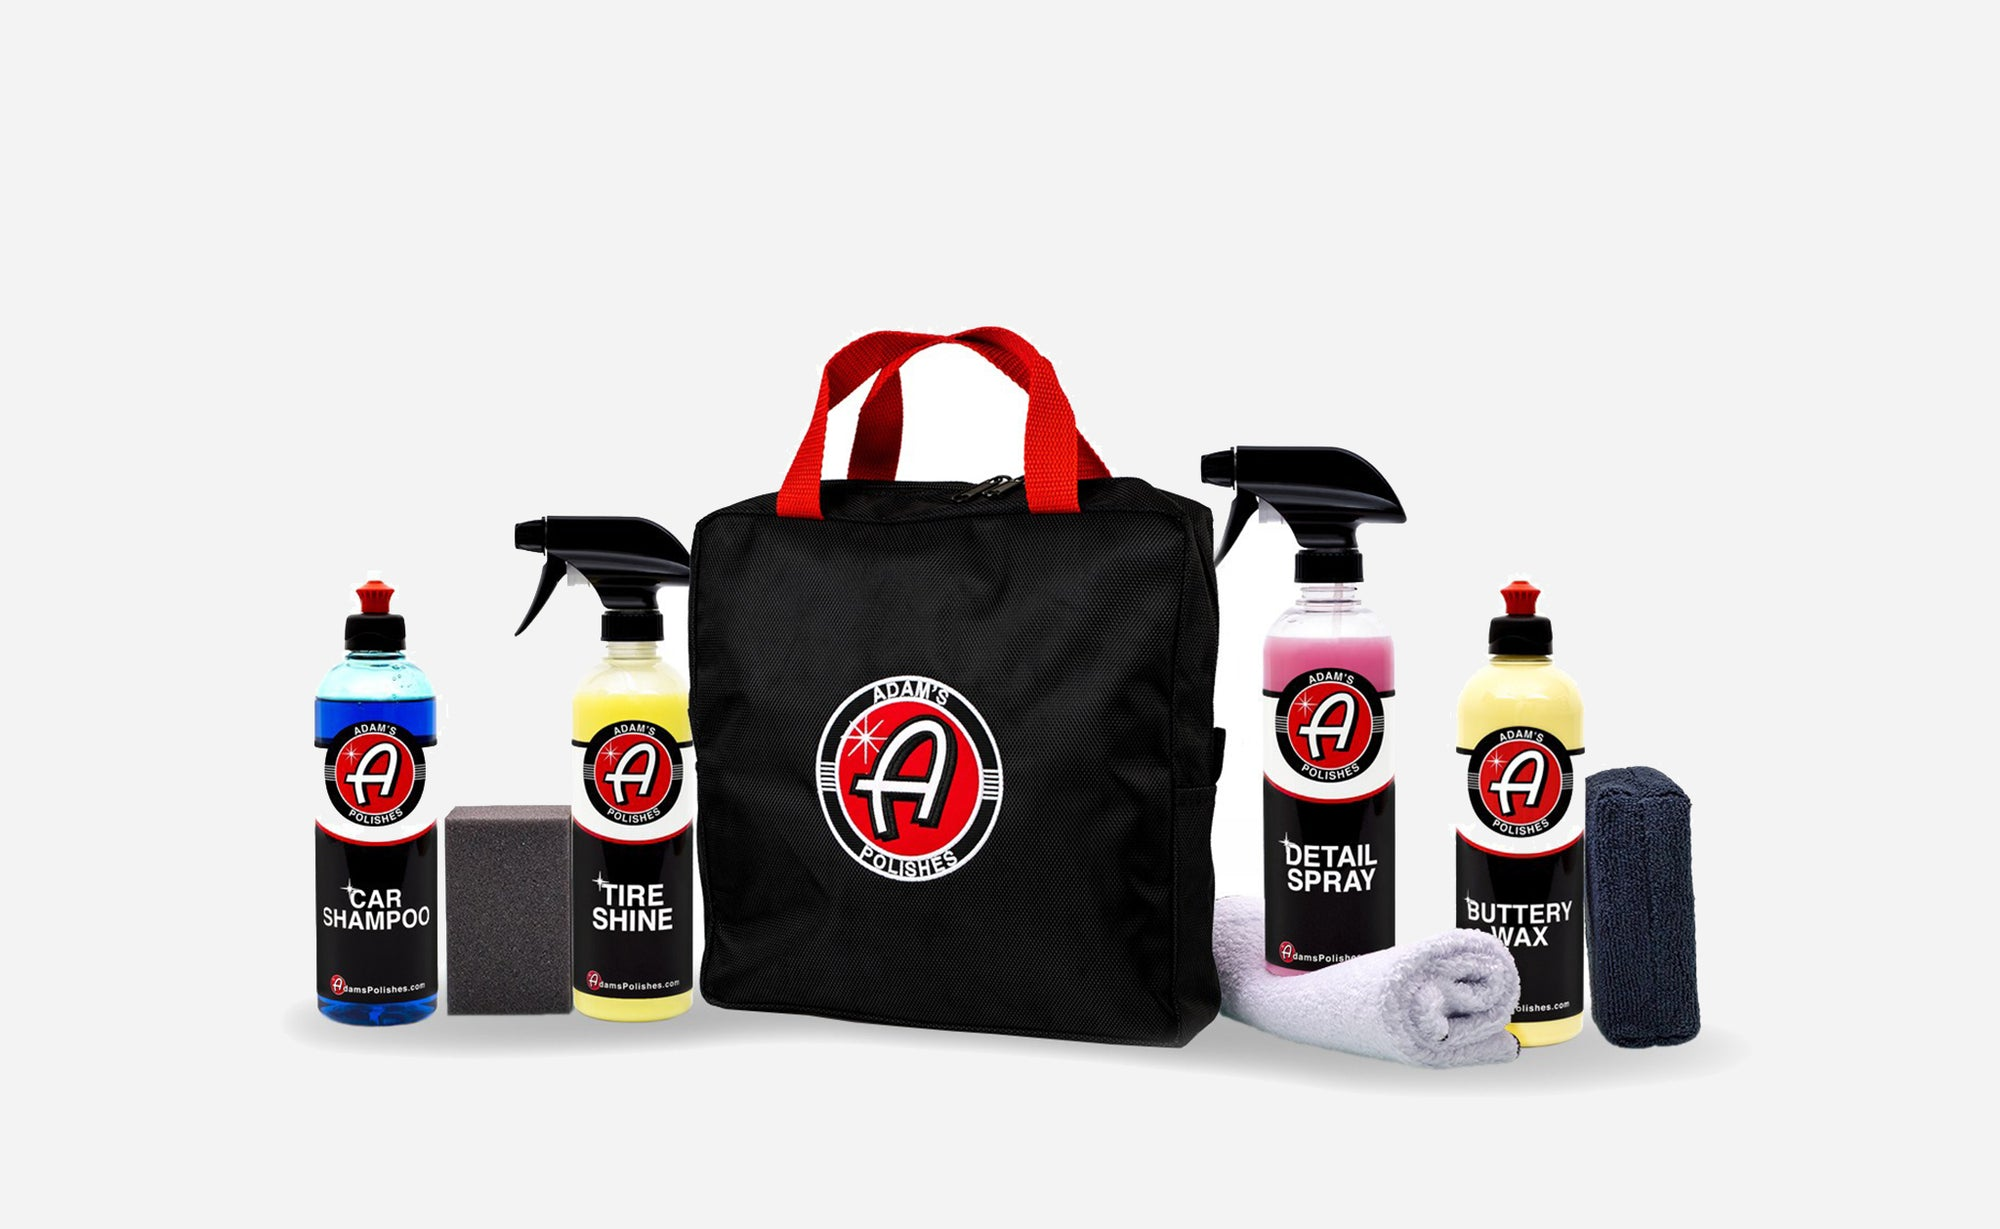 Adam's 4 Bottle Bag Kit